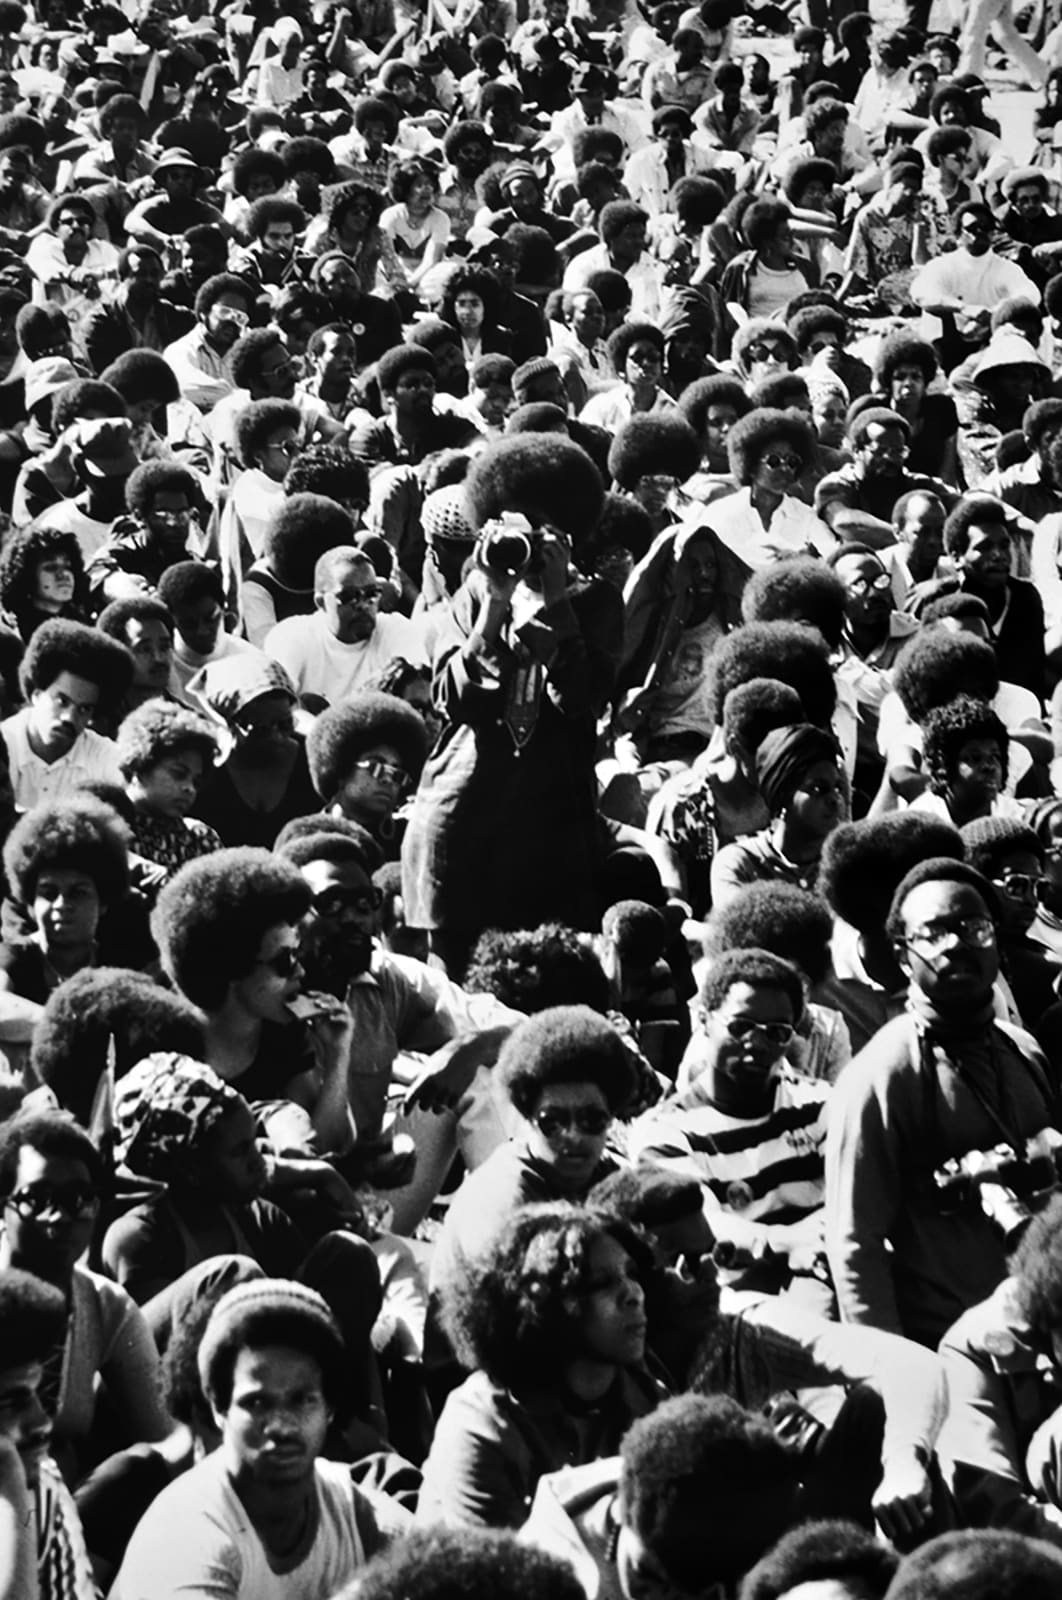 Jim Alexander Were You There, Washington DC, 1972 22.5 x 30.5 inches